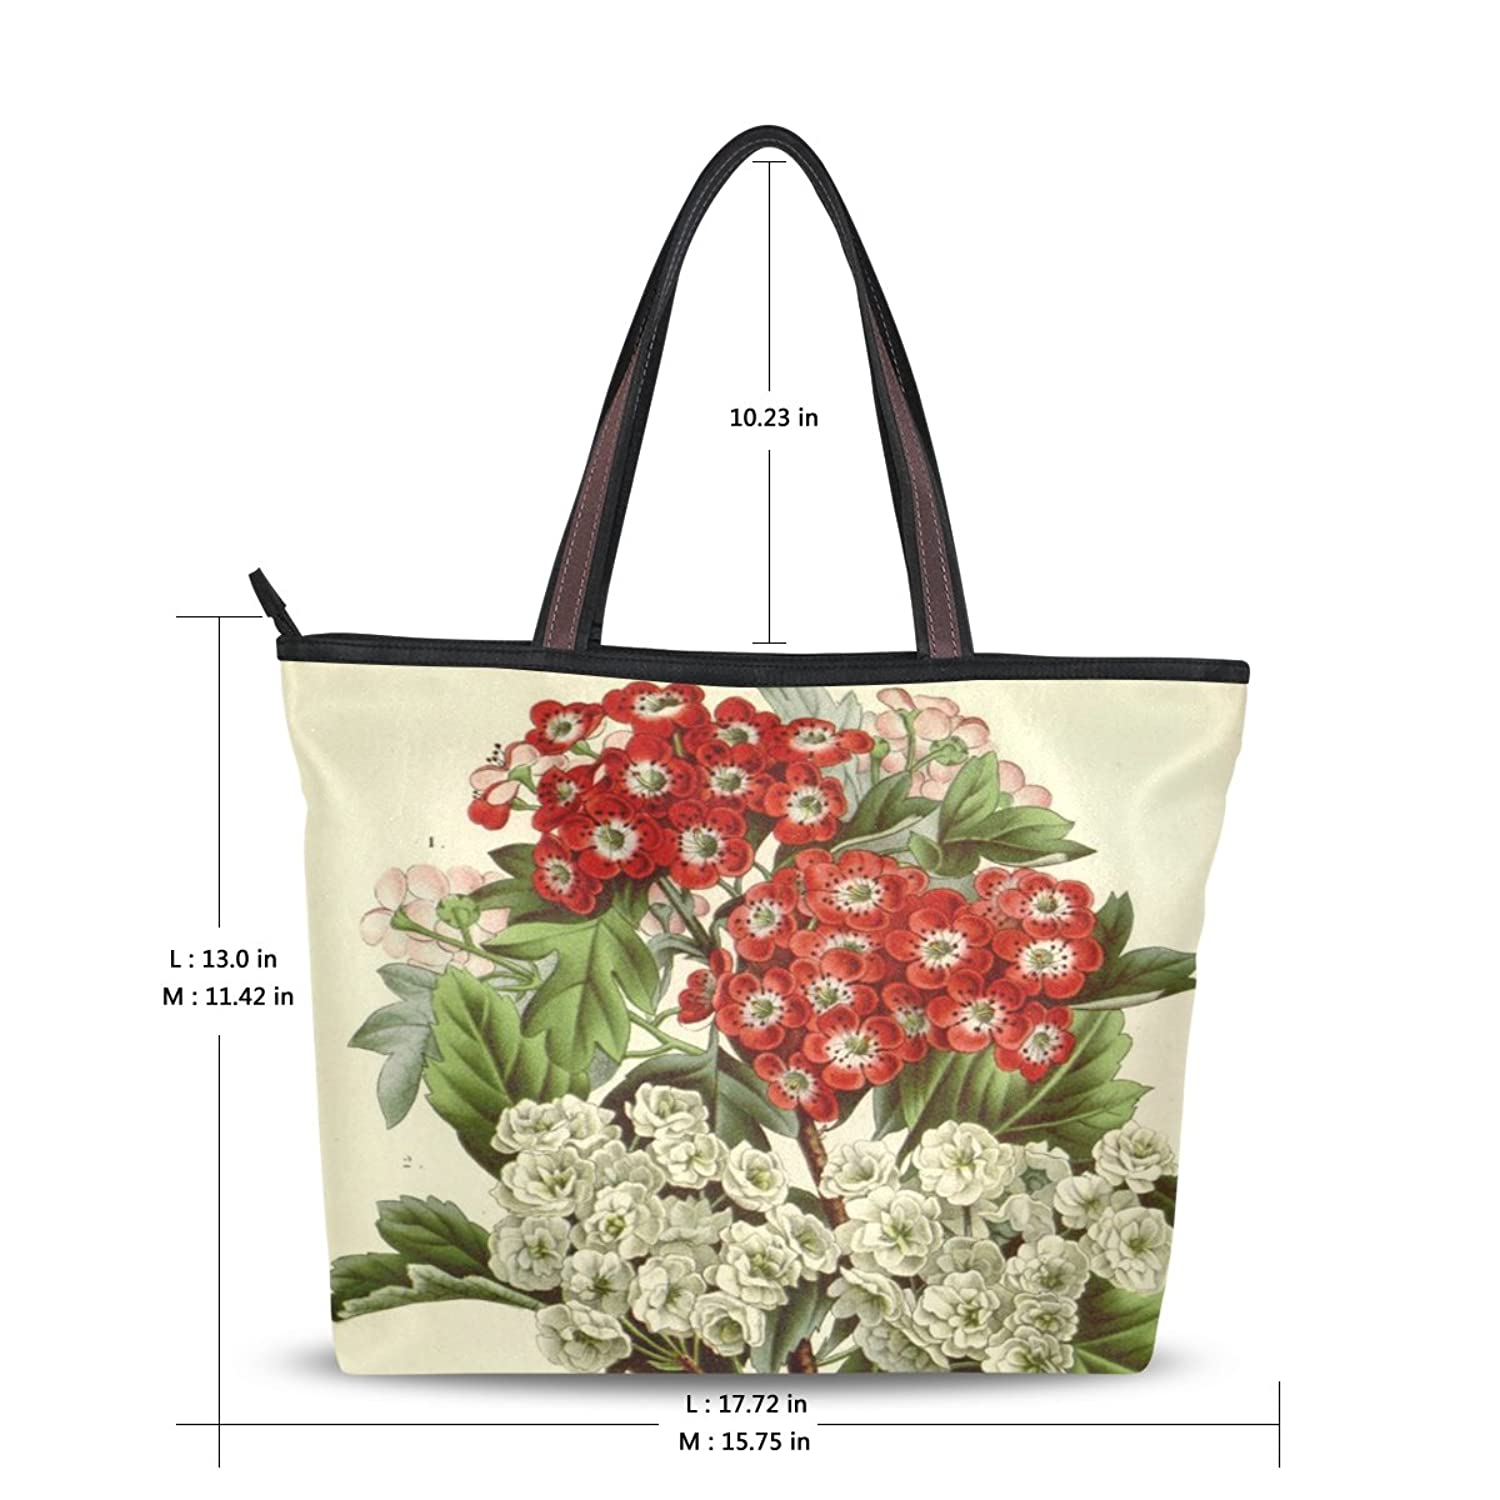 WHBAG Lightweight Handbag For Women,Art Vintage Flower,Shoulder Tote Bag